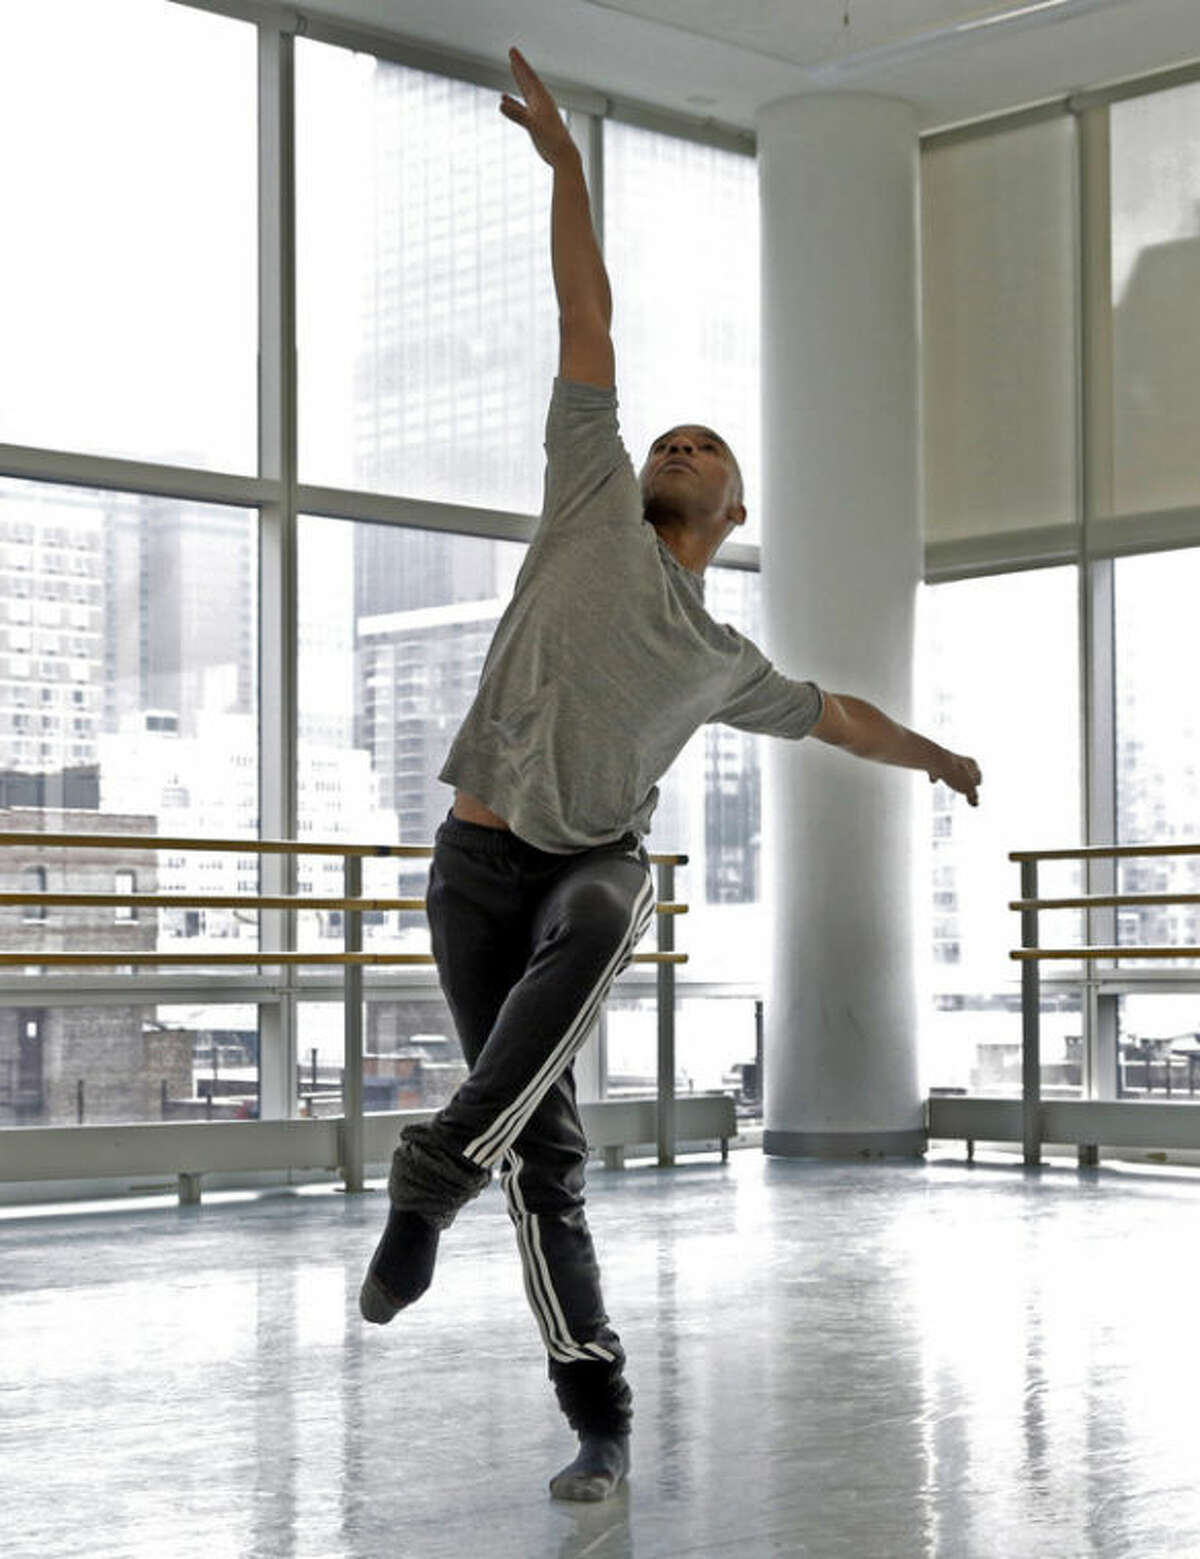 AP Photo/Richard Drew In this Monday, Dec. 2, photo, Matthew Rushing, a veteran star of the Alvin Ailey Dance Theater, rehearses at the company's headquarters, in New York. When Rushing was a young boy growing up in Inglewood, Calif., his mother was concerned he might fall prey to the gang violence that plagued the city. So she signed him up for an afterschool arts program.